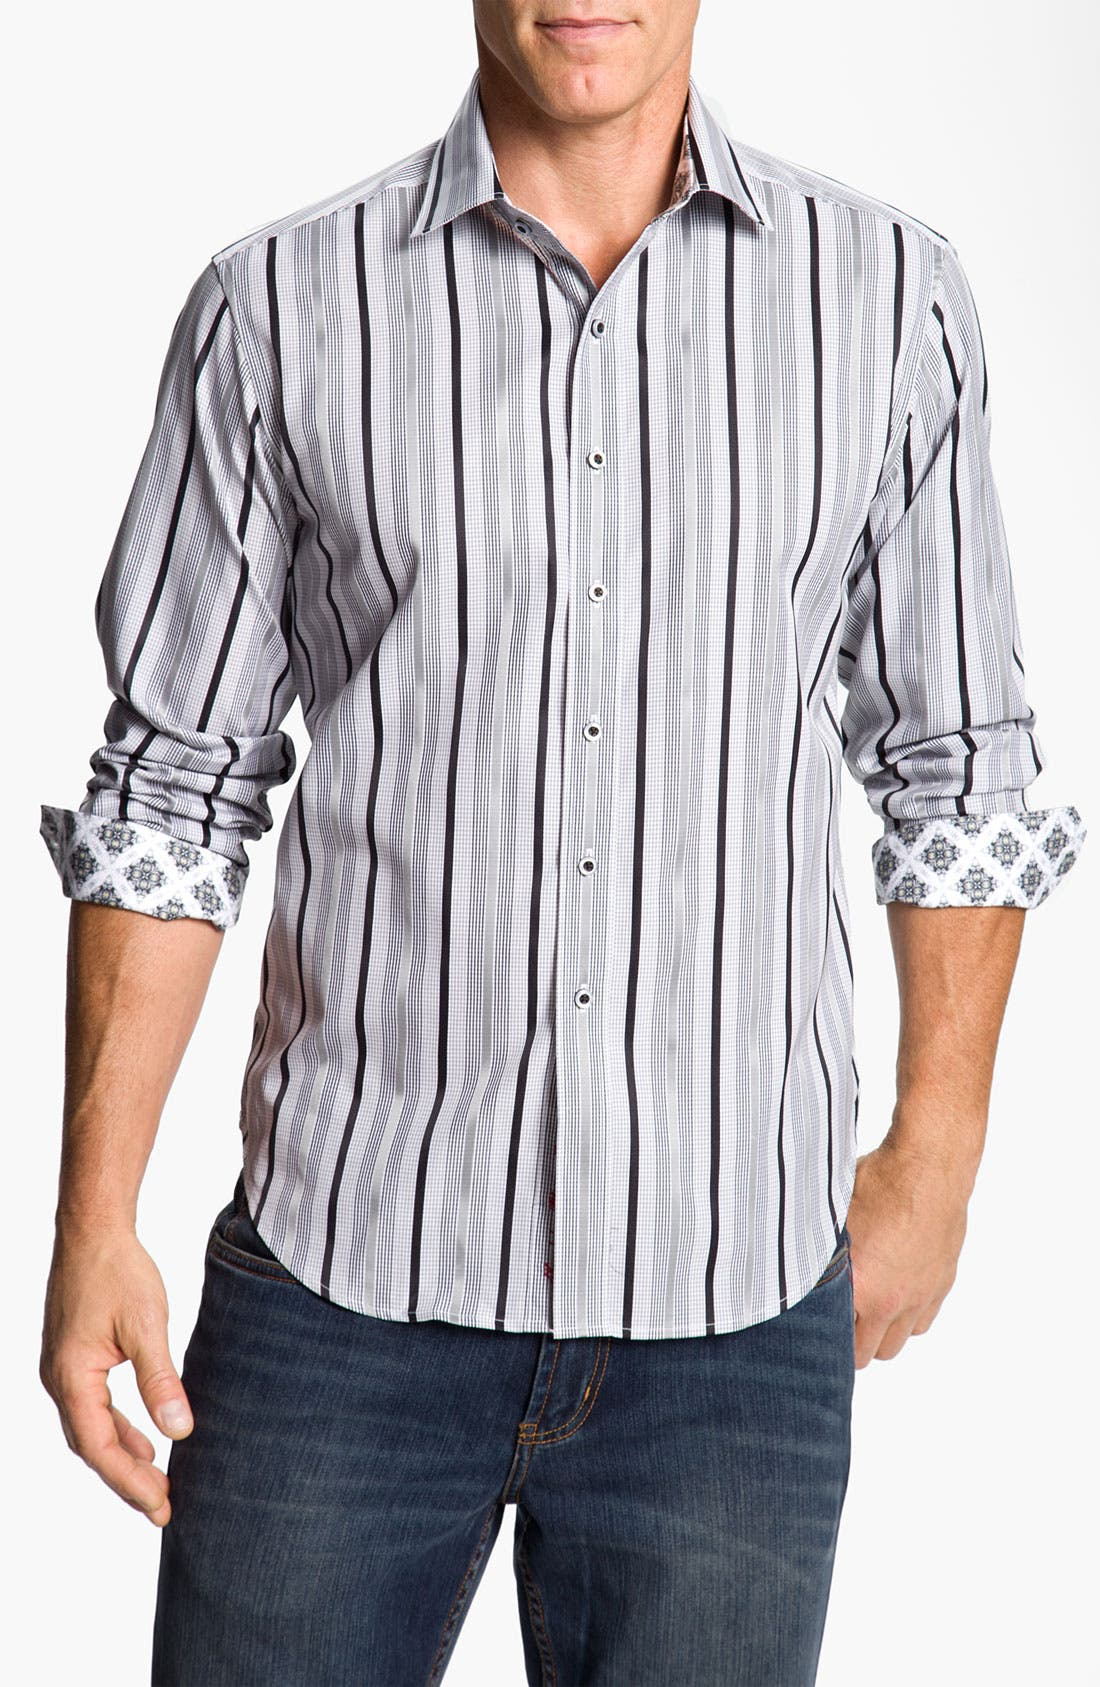 Alternate Image 1 Selected - Robert Graham 'Buckingham' Sport Shirt